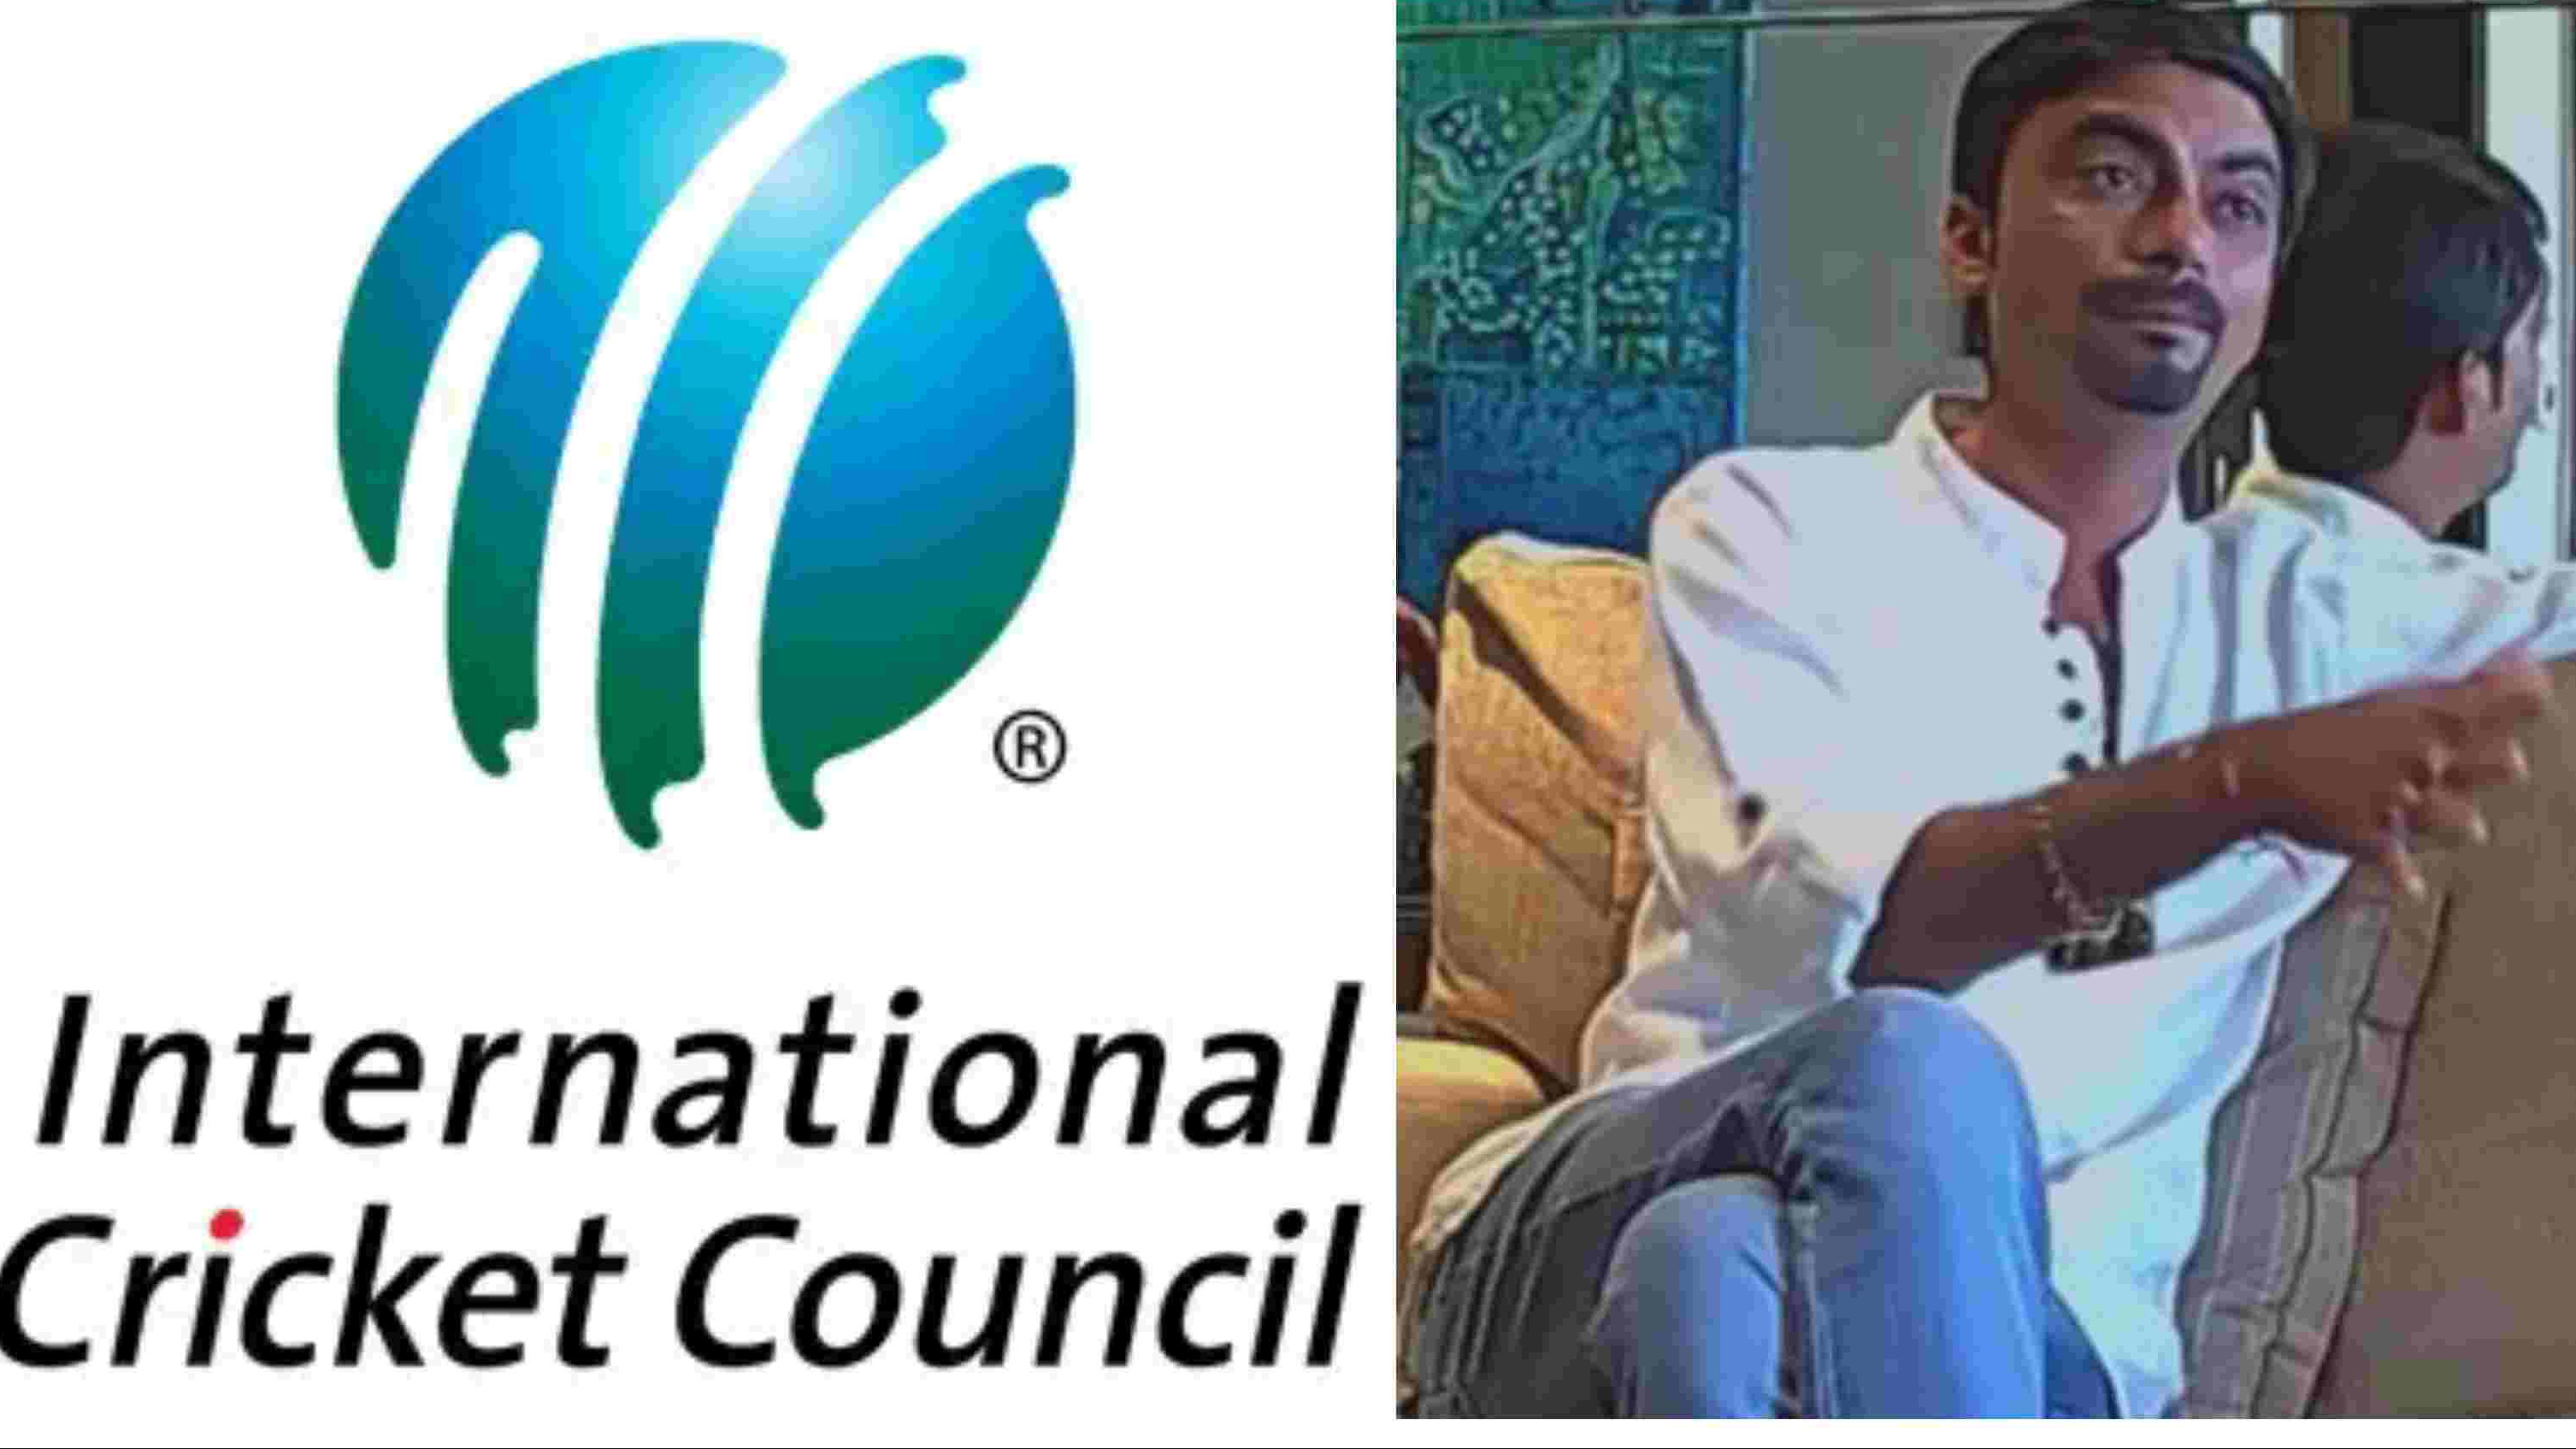 ICC appeals for information on alleged match-fixer Aneel Munawar, hires betting analysis company